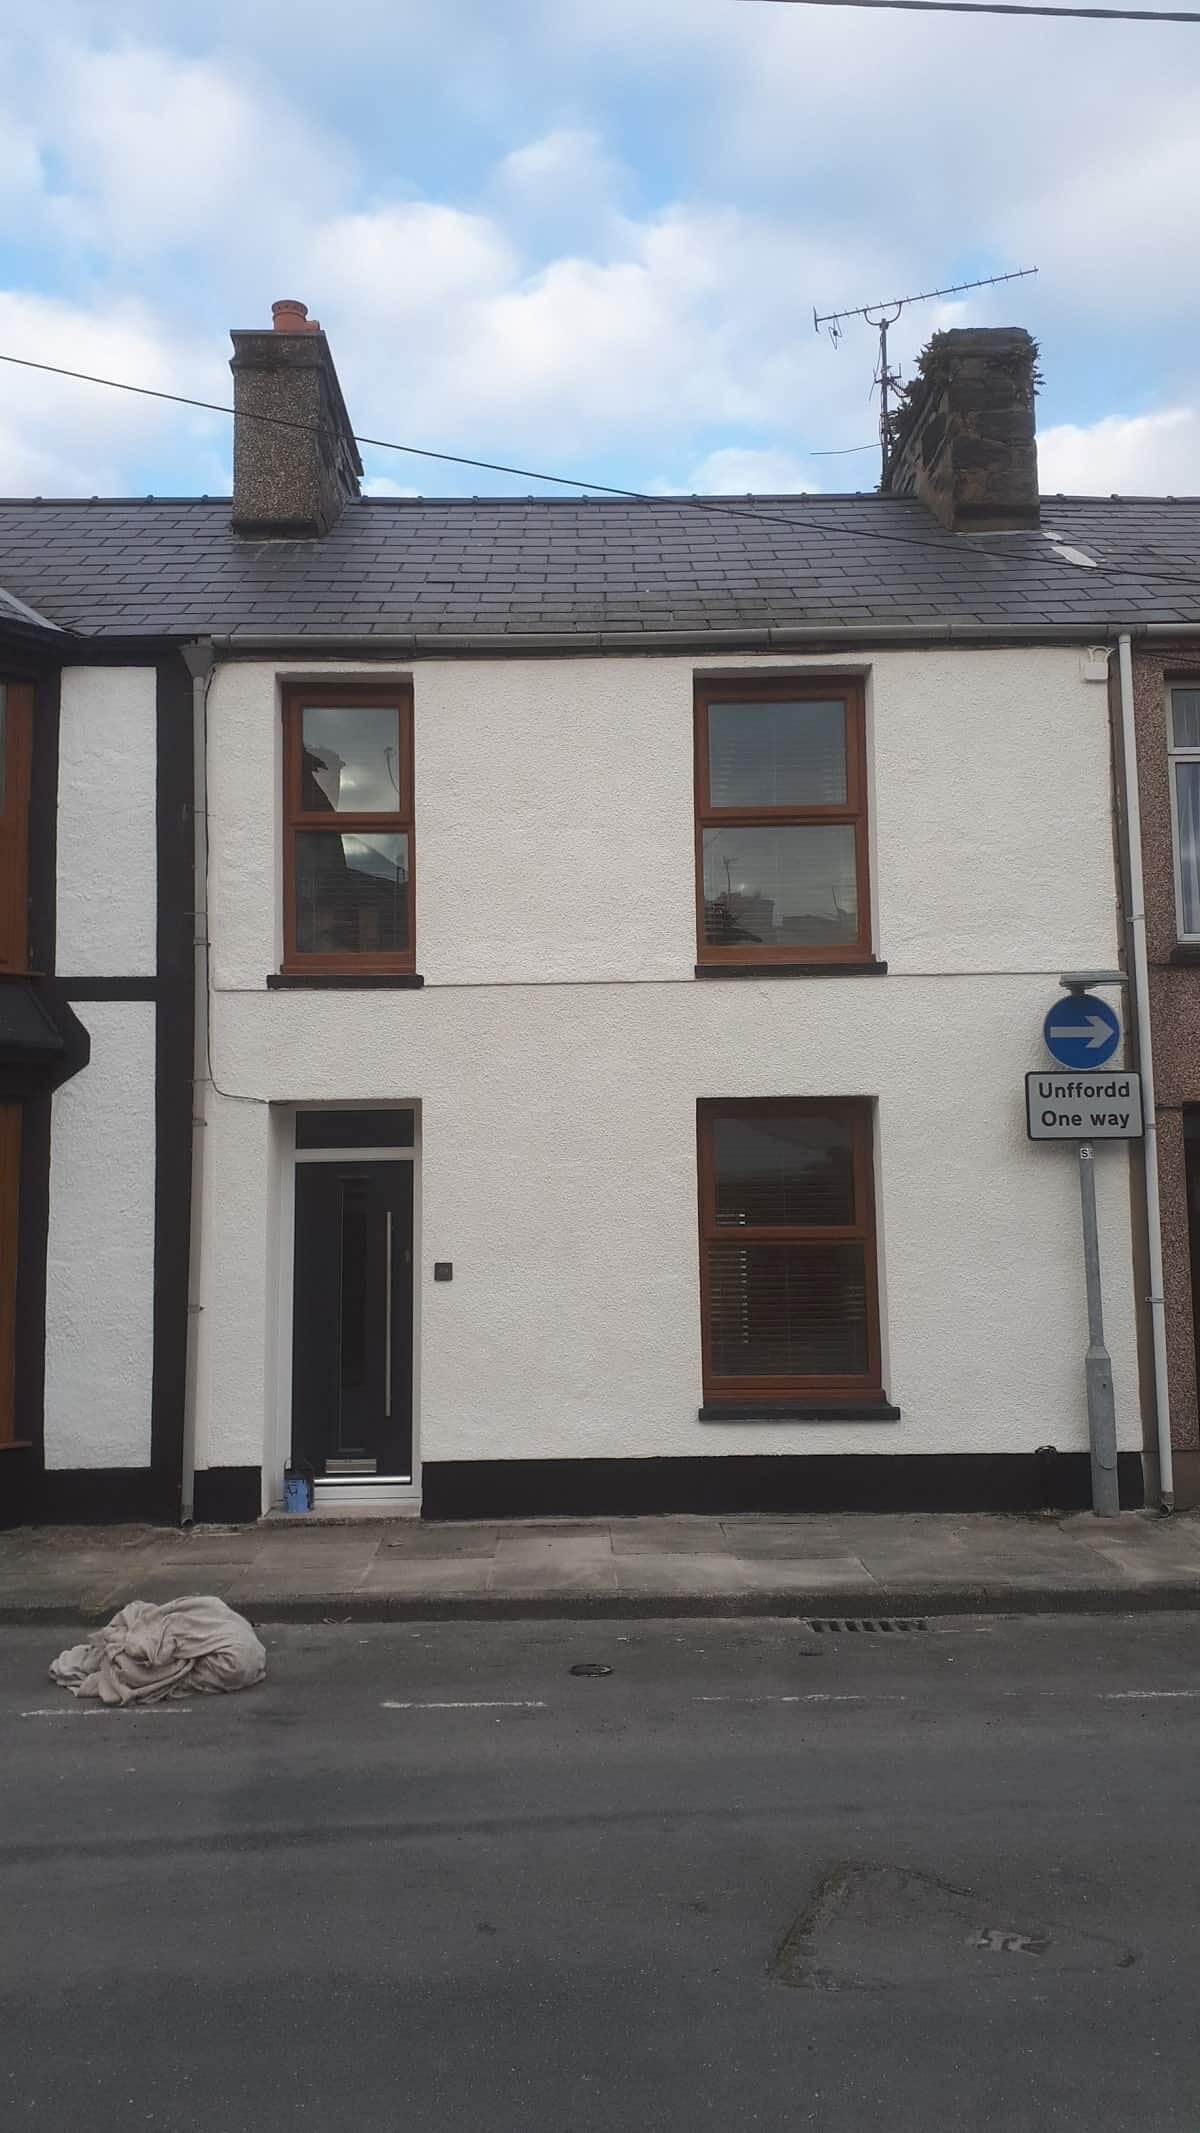 Terraced house in Porthmadog Wales freshly painted exterior with Wethertex wall coatings